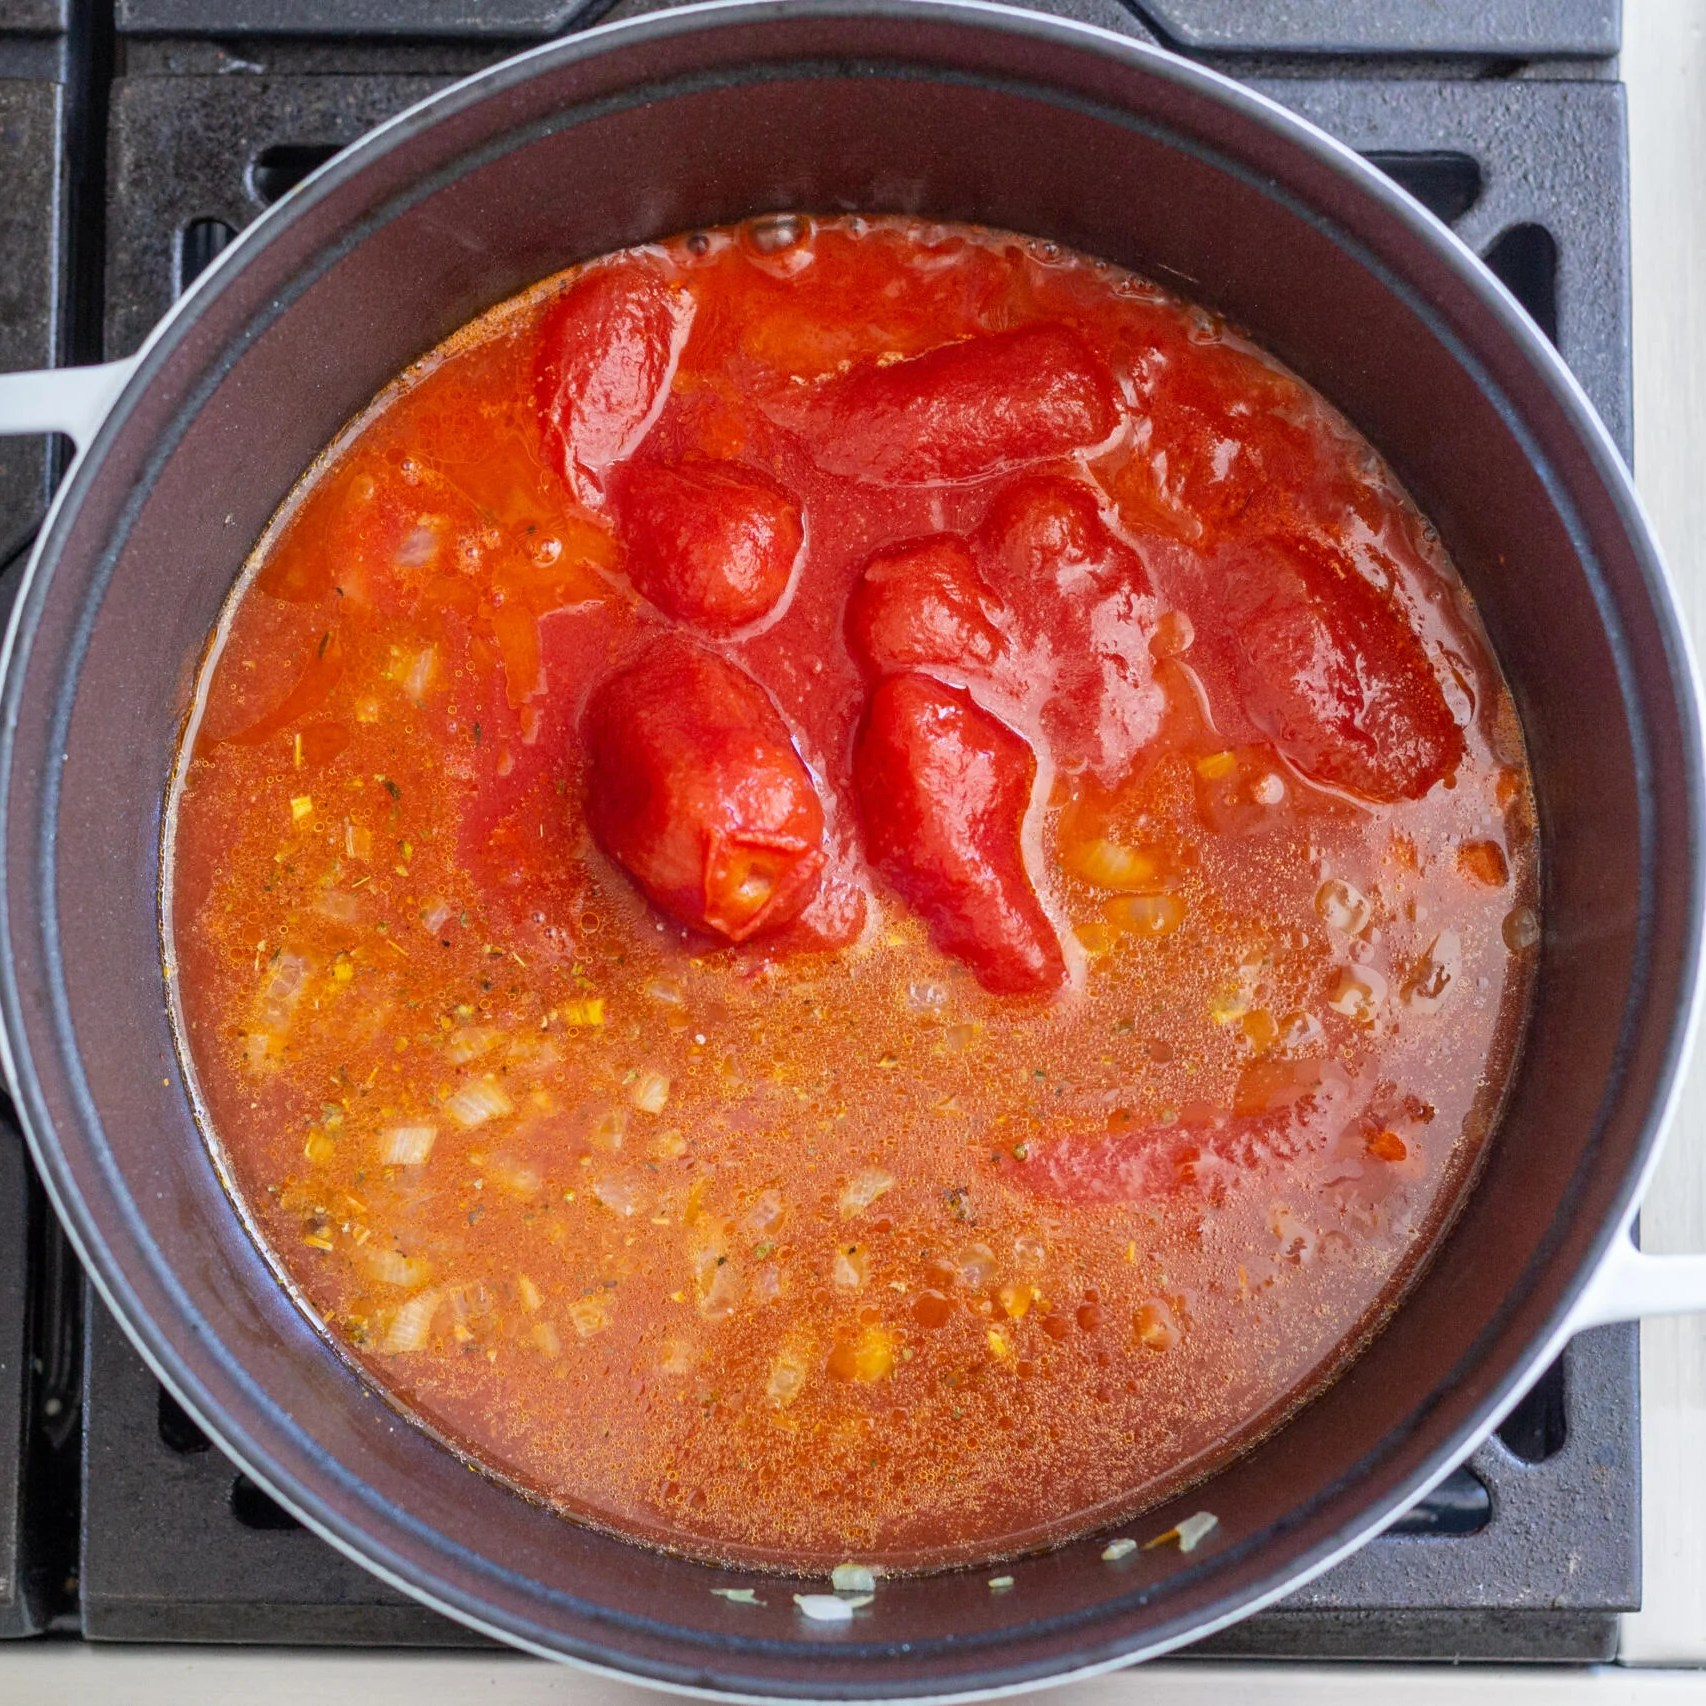 broth simmering with tomatoes and broth